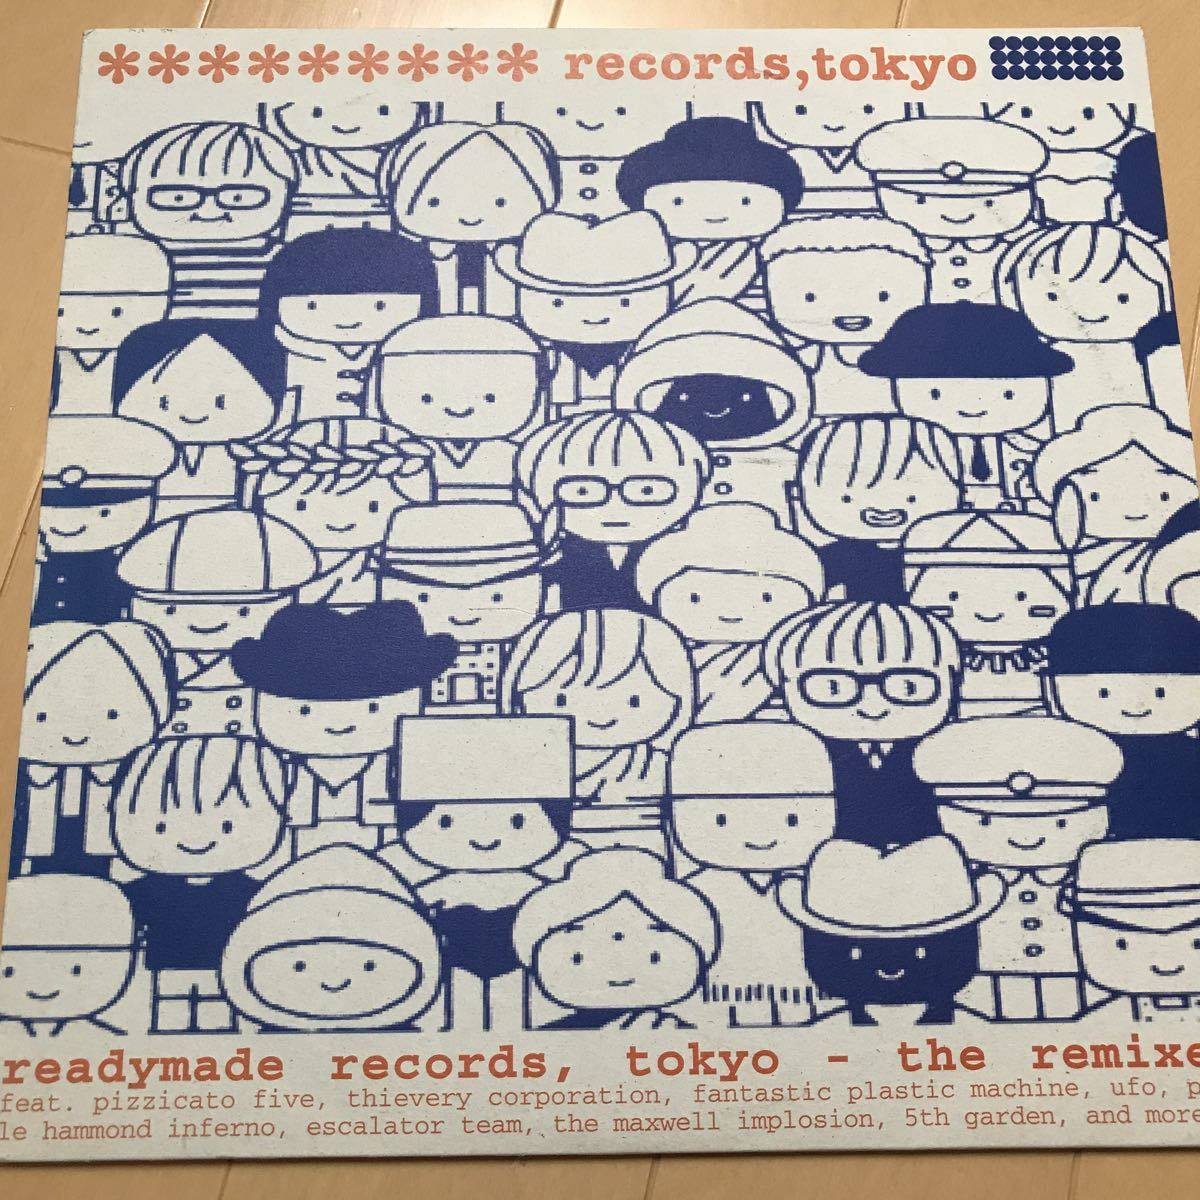 readymade records,tokyo/the remix ,lupin the 3rd,pizzicato five,FPM,ルパン 2LP